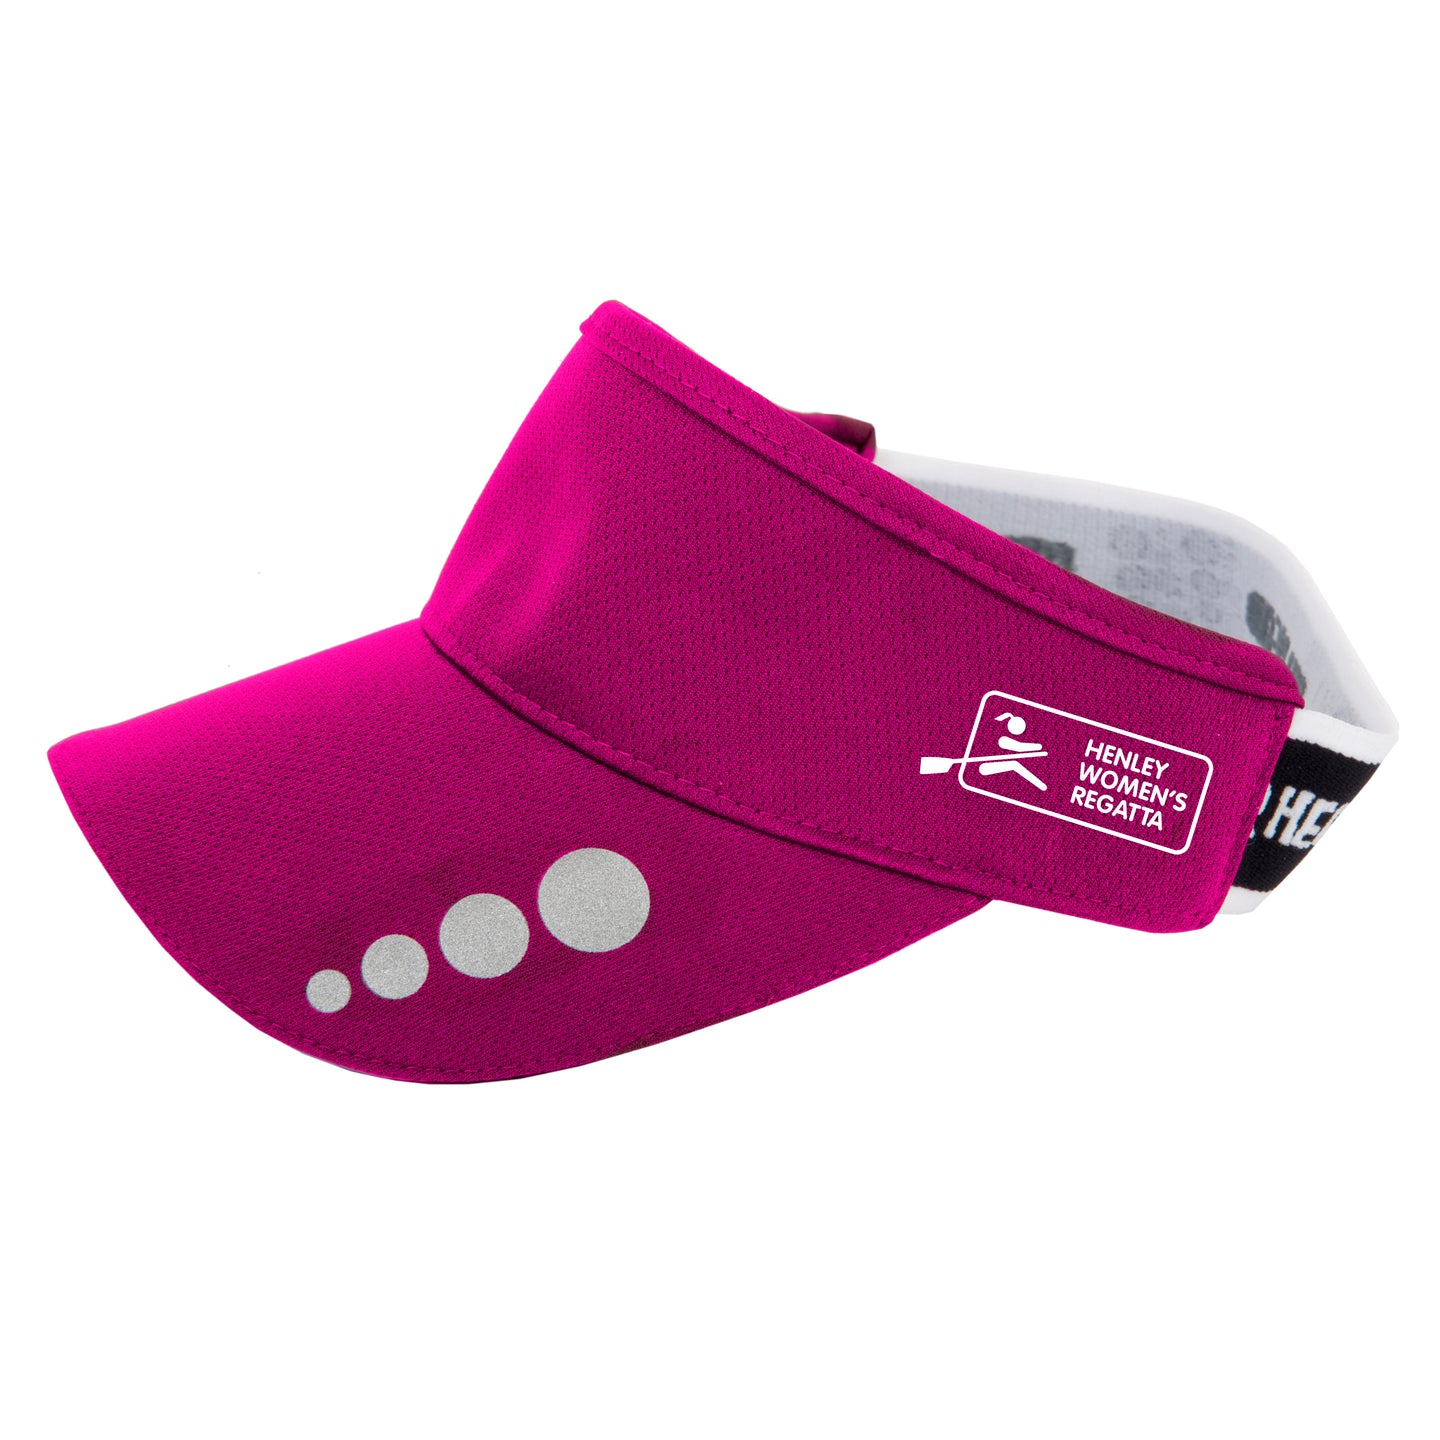 HWR Air Head Microlight Visor